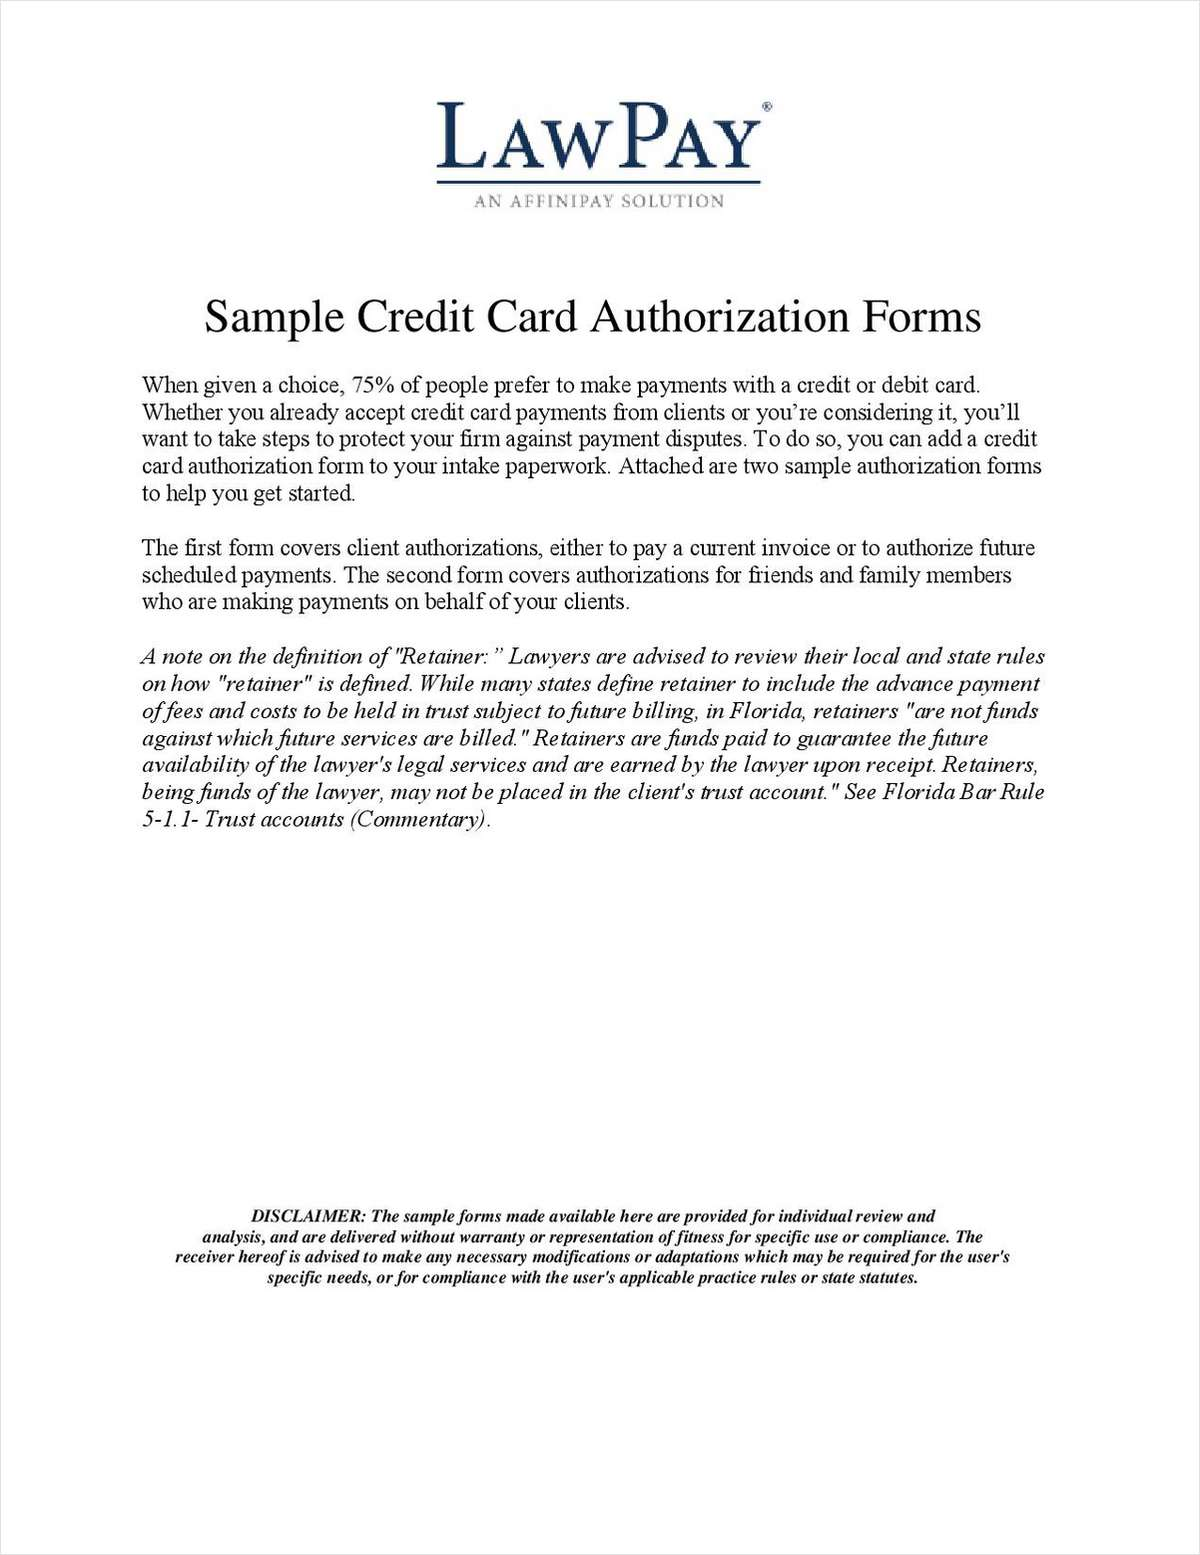 2 Sample Credit Card Authorization Forms